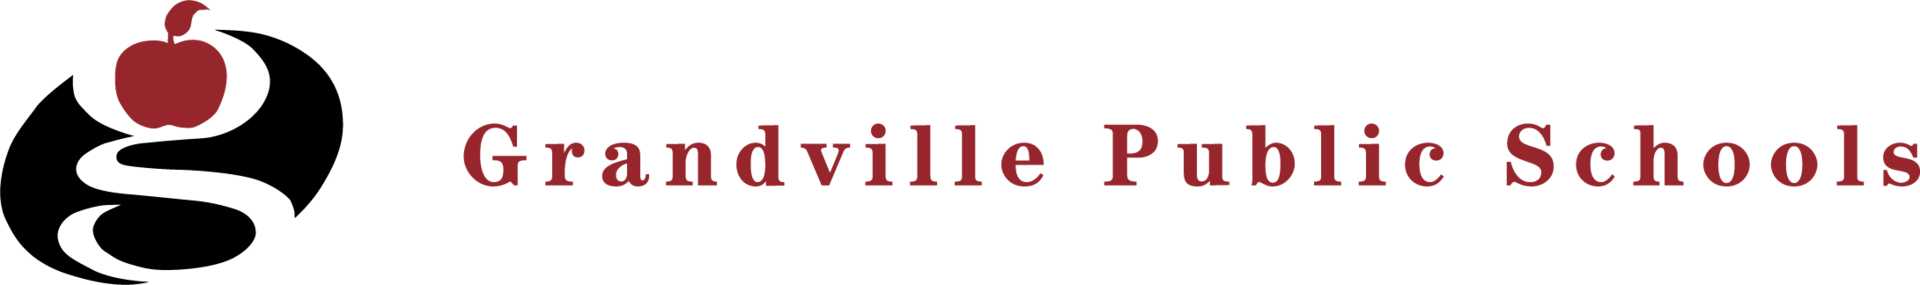 g logo with text grandville public schools